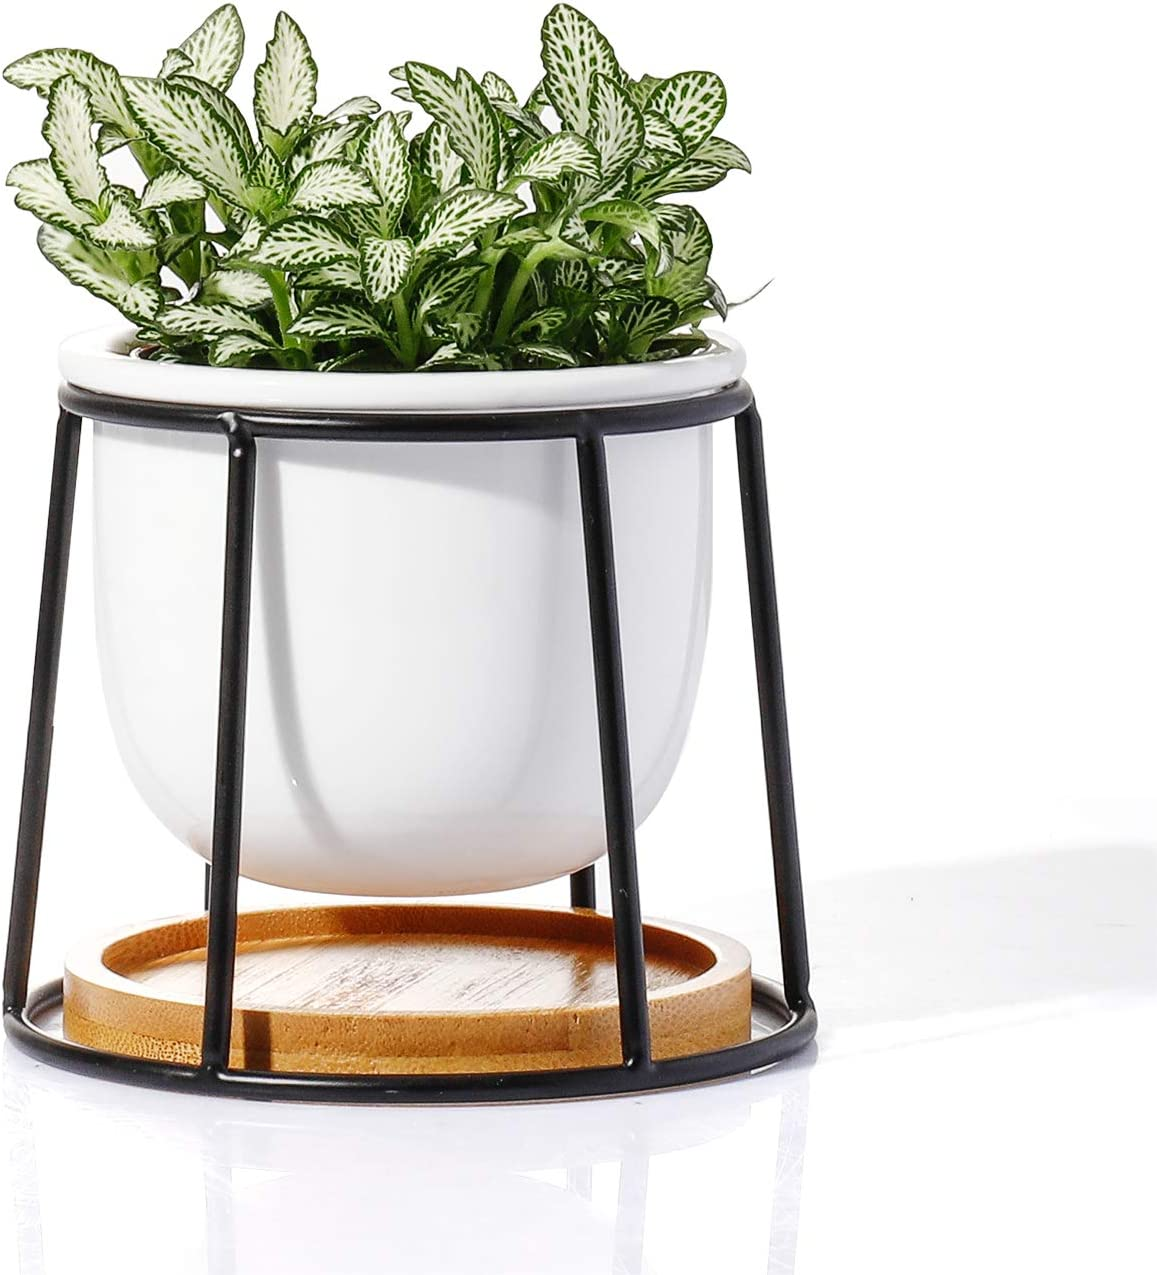 POTEY Ceramic Succulent Planter Pots - 3 Inch Modern Century Indoor Cactus Tabletop Container with Matte Black Metallic Stand with Watering Drain Holes 211111